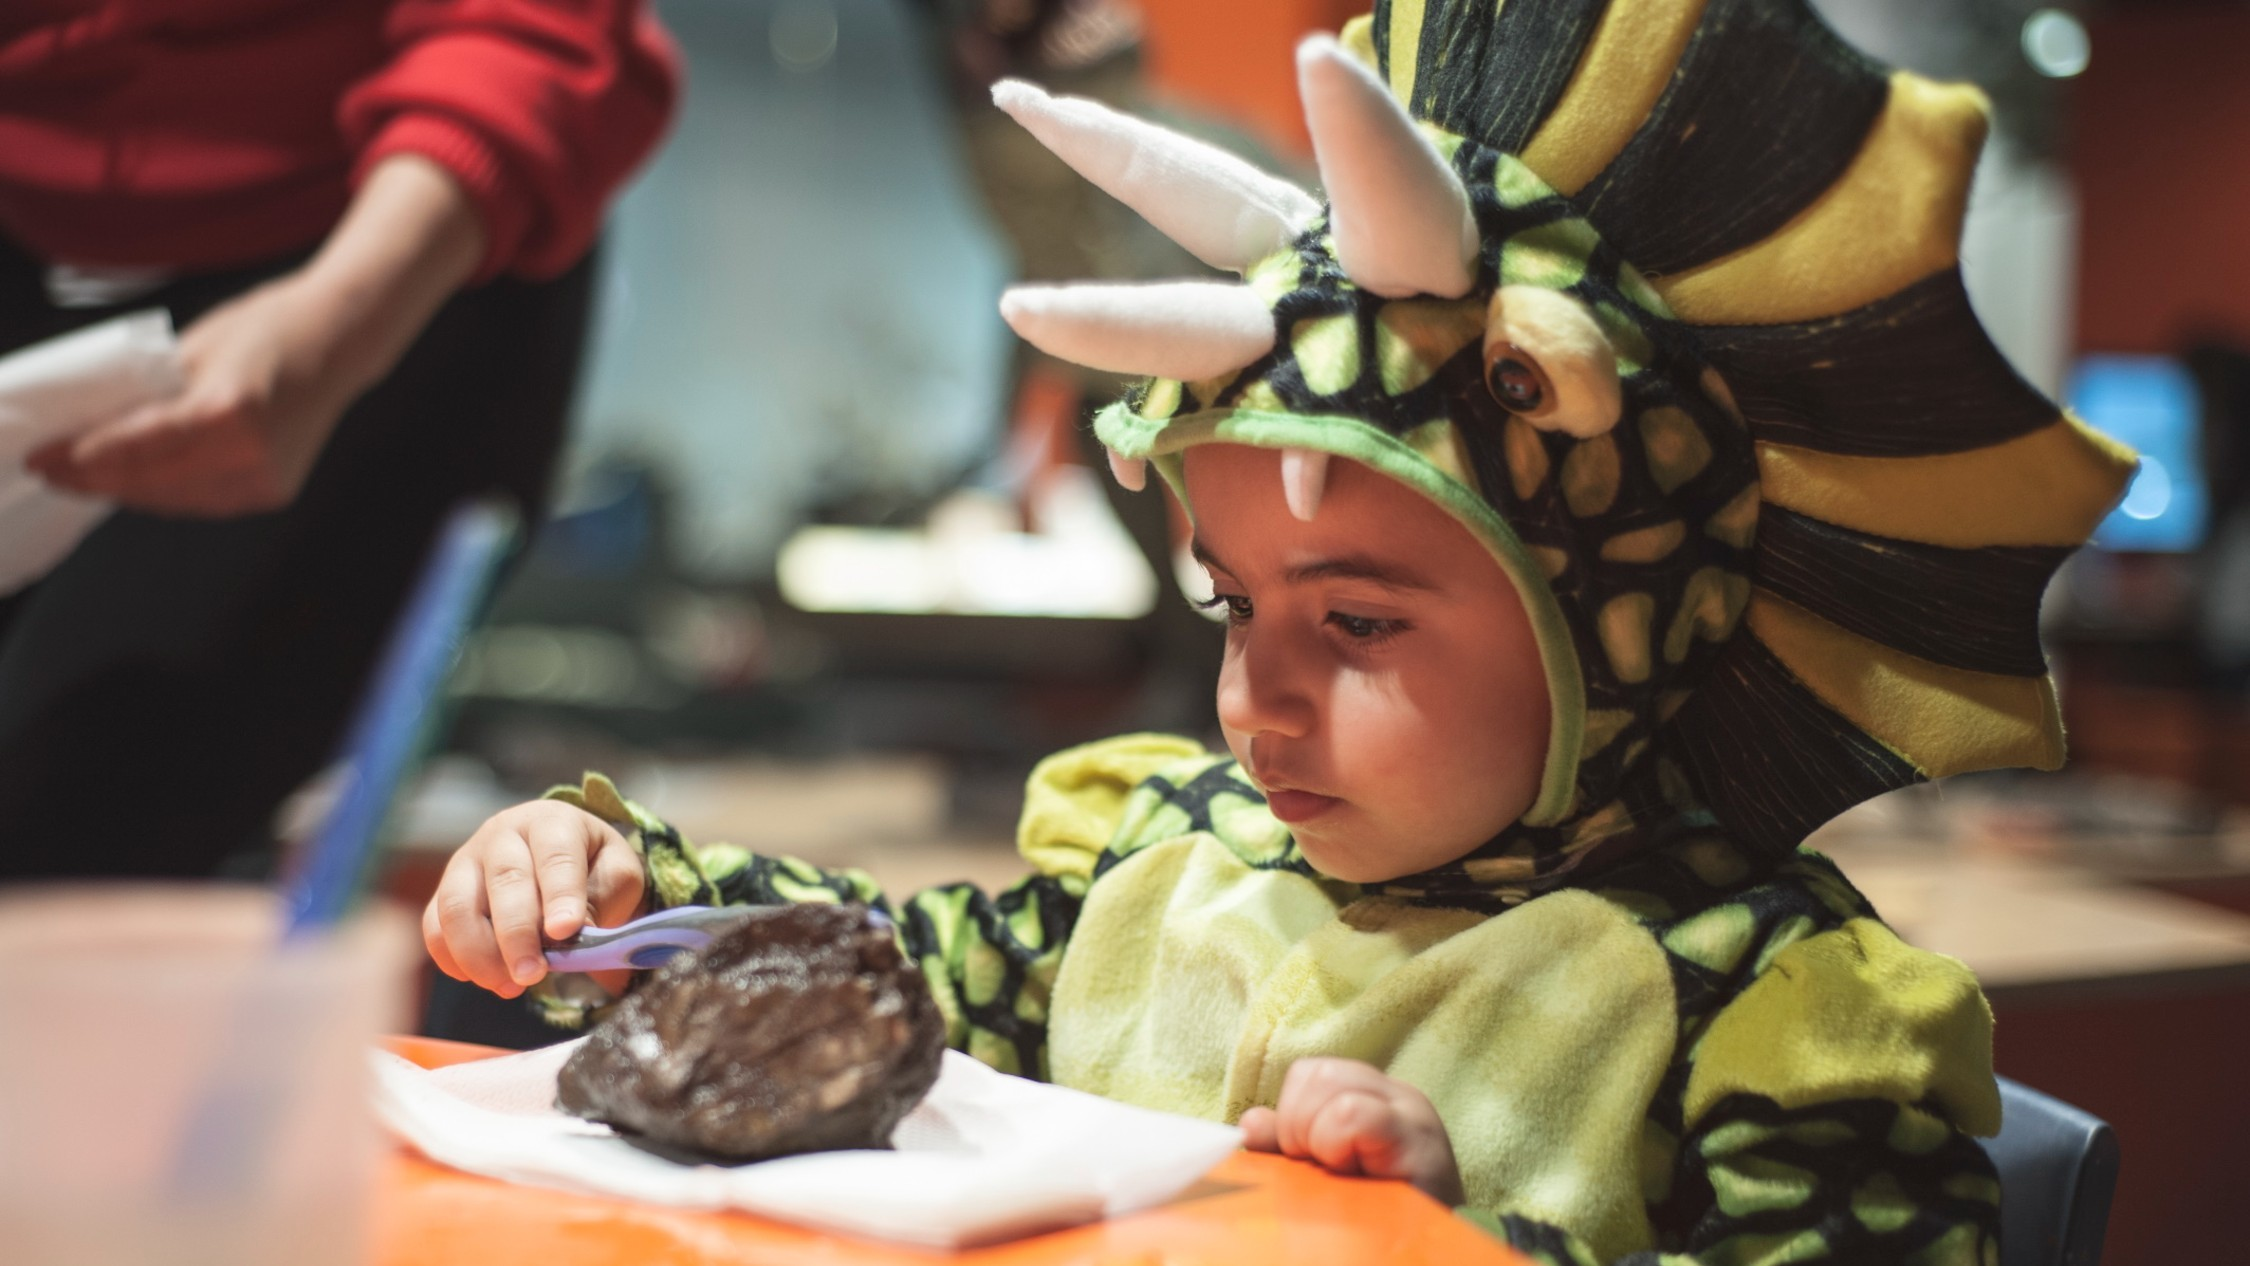 A kid in a dinosaur outfit